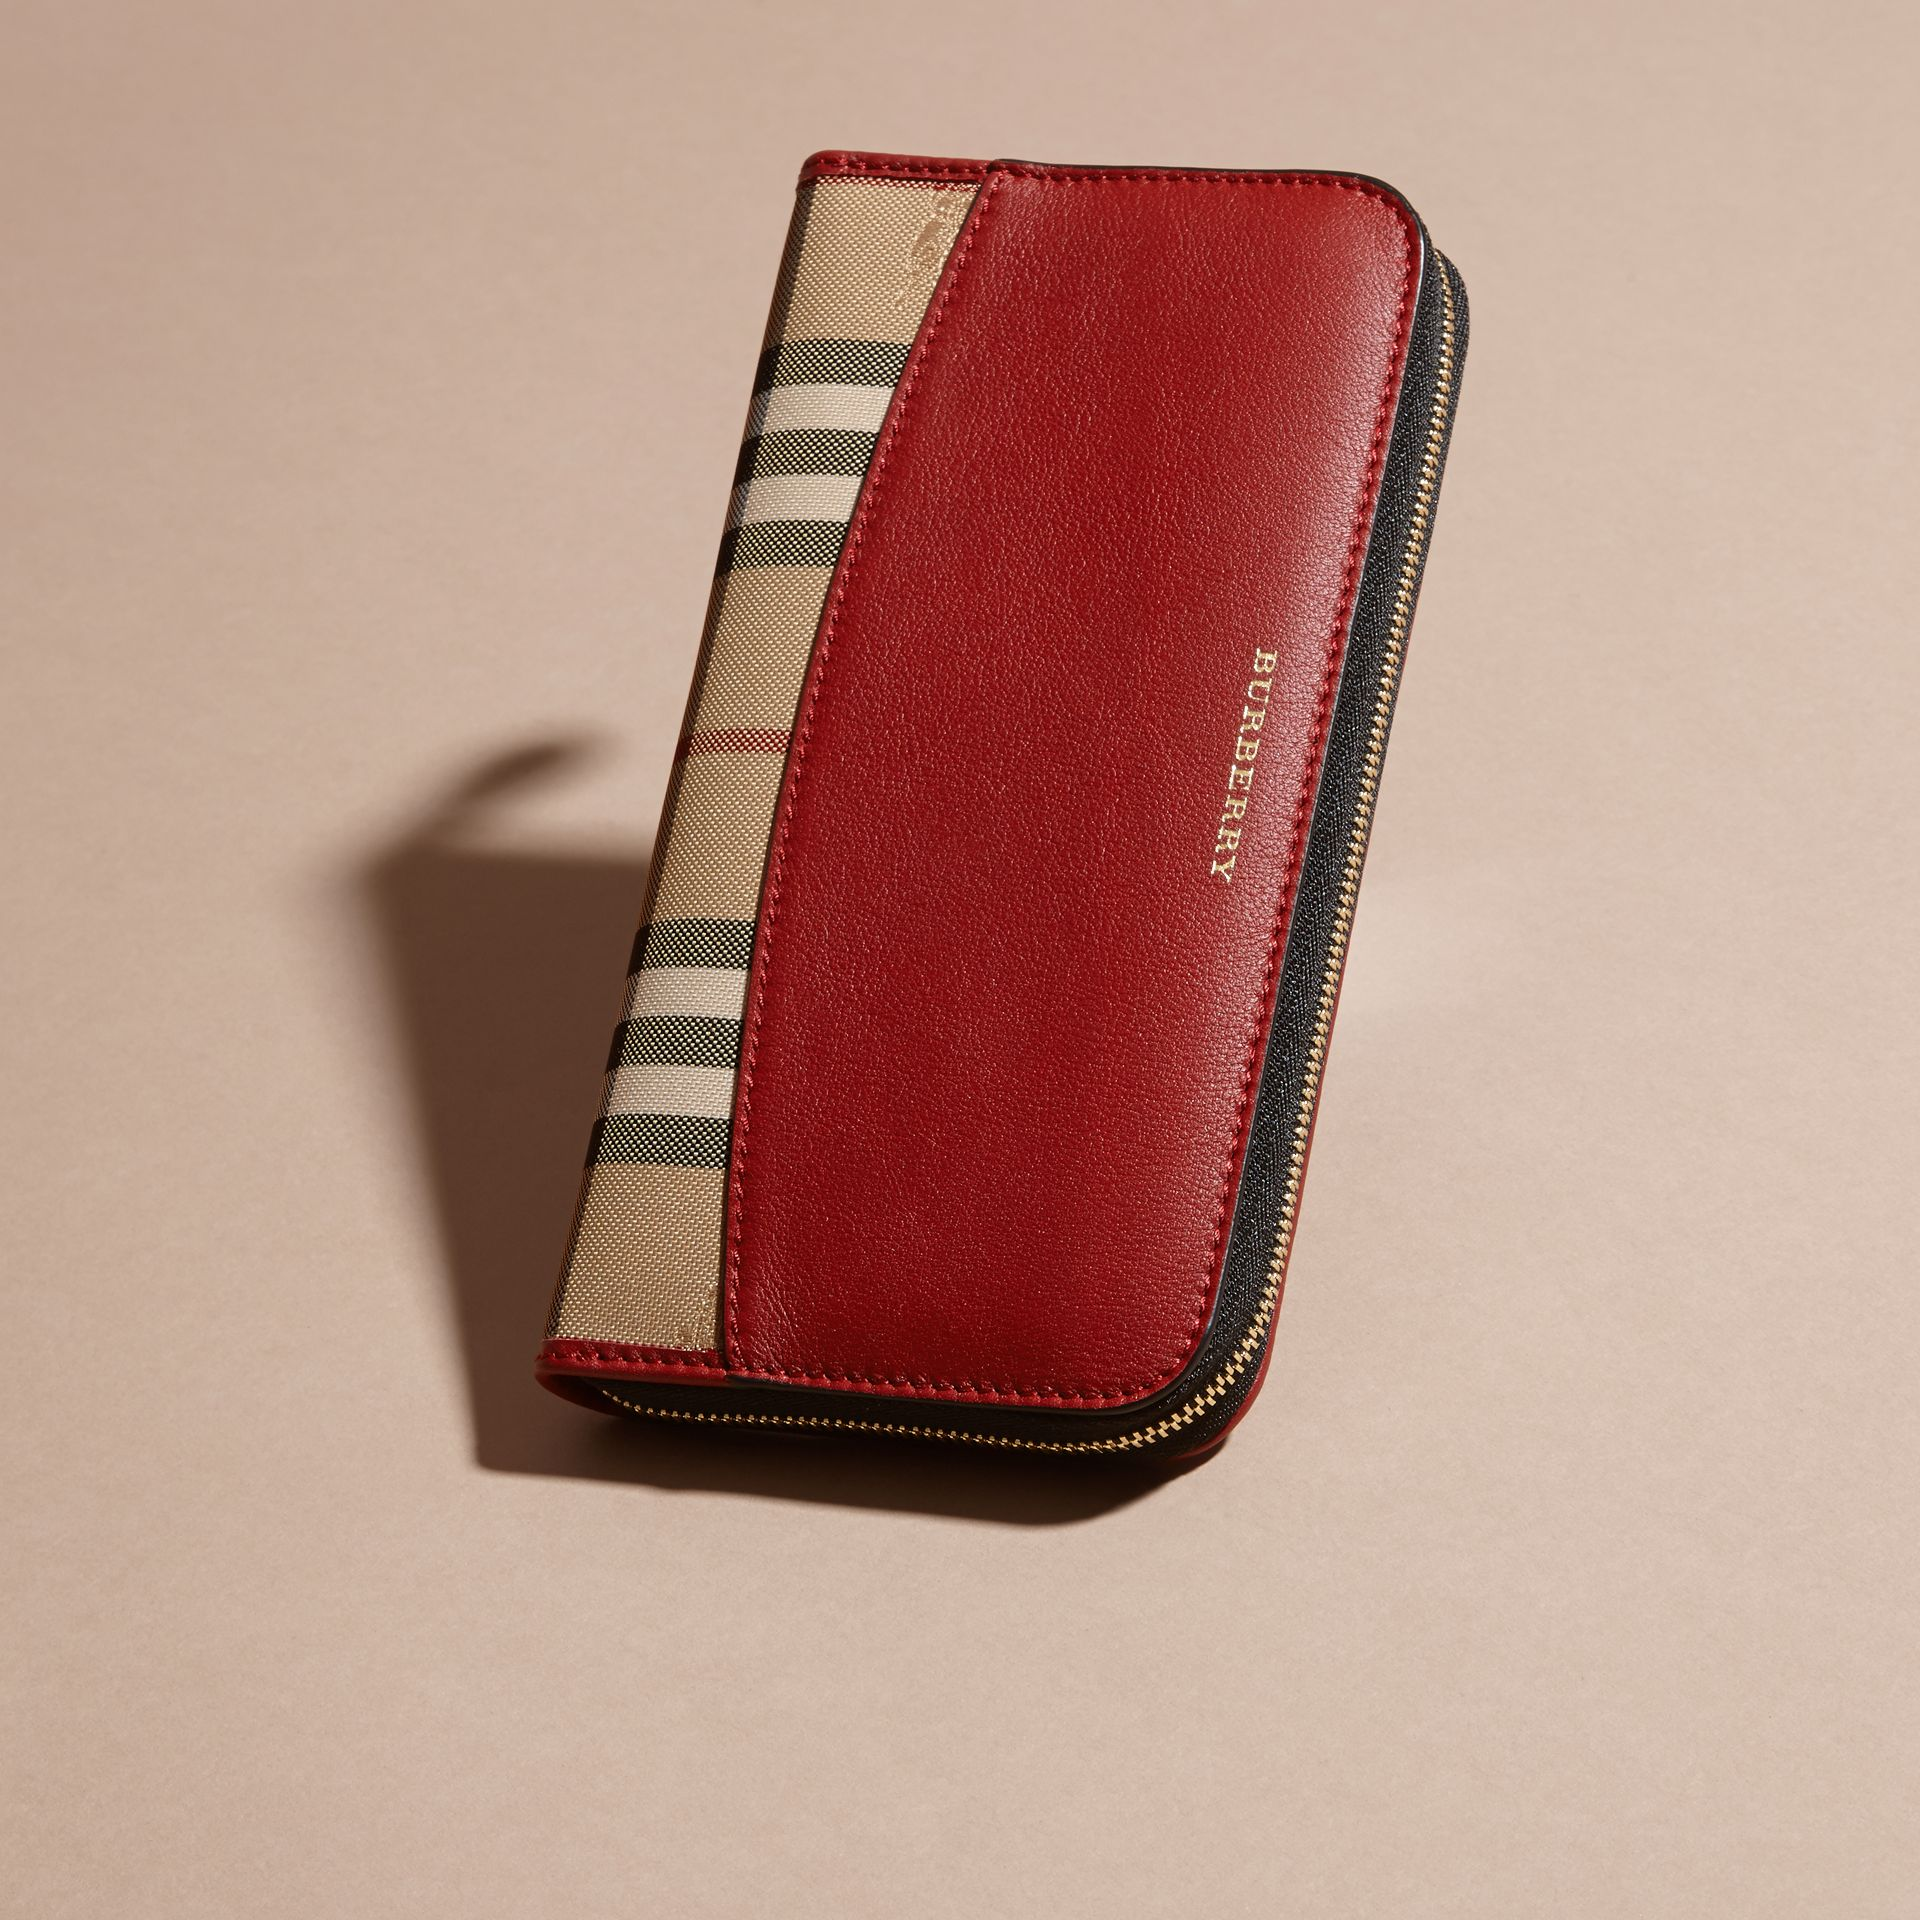 Horseferry Check and Leather Ziparound Wallet in Parade Red - Women | Burberry Canada - gallery image 3